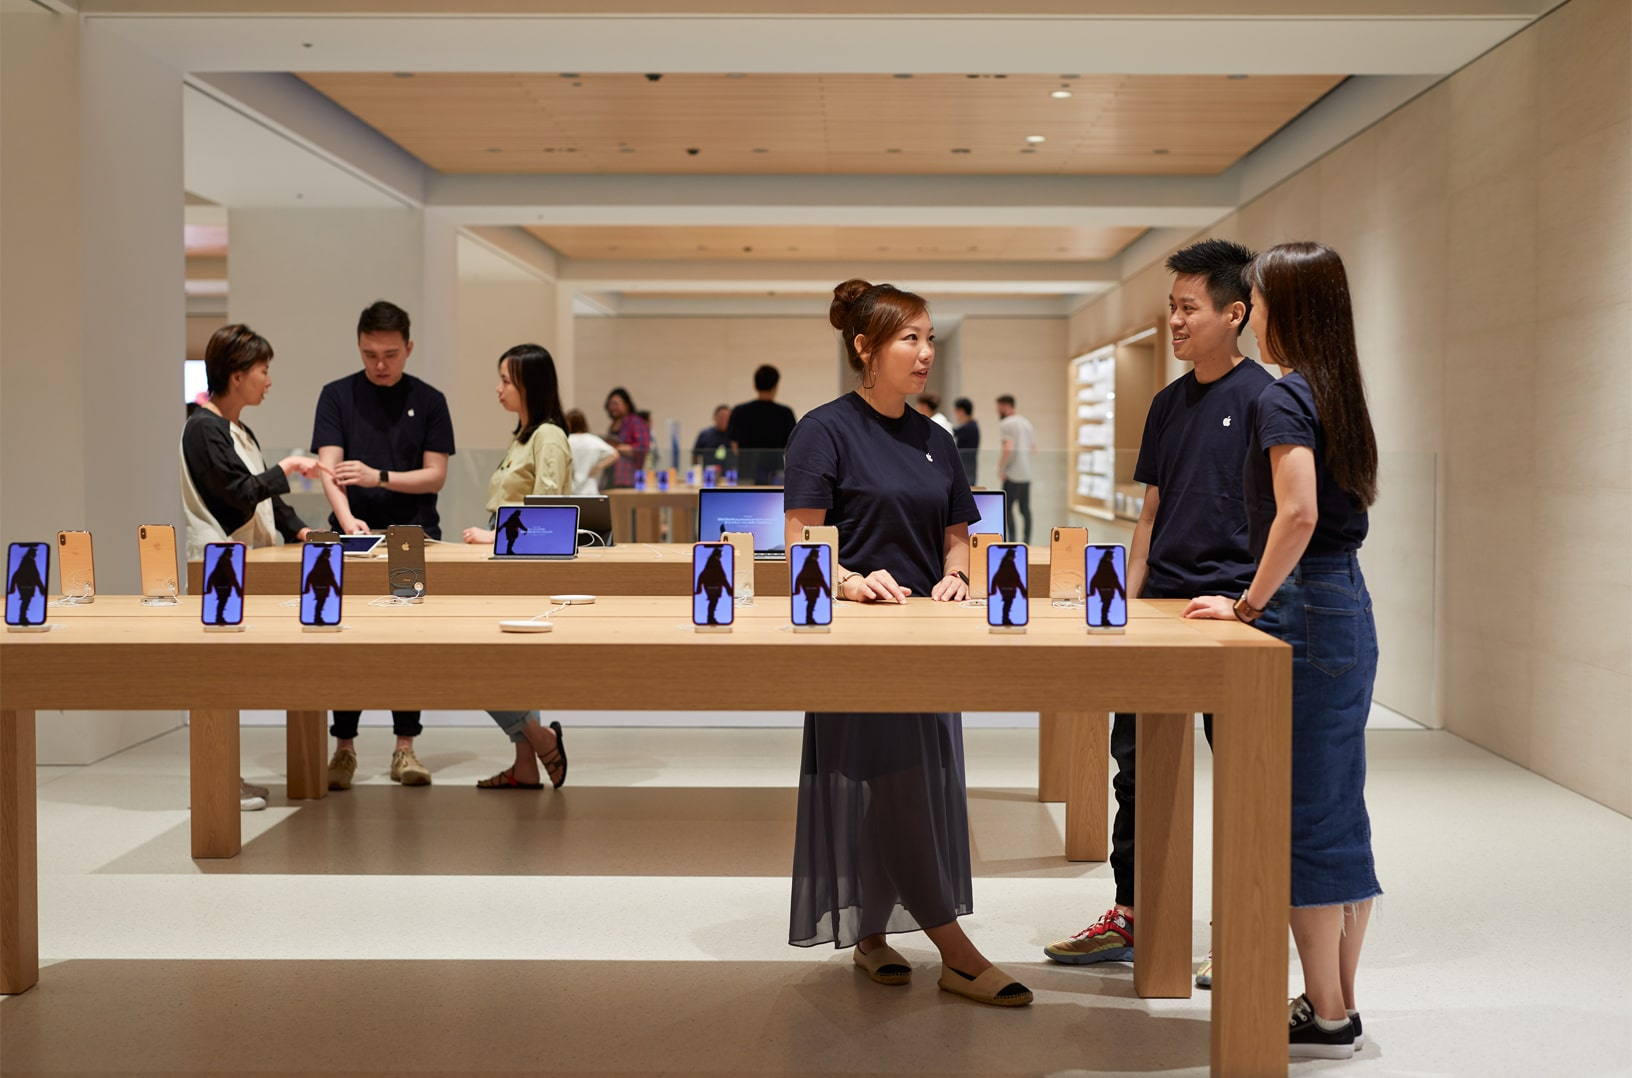 Apple-Marunouchi-opens-saturday-in-Tokyo-team-members-090419